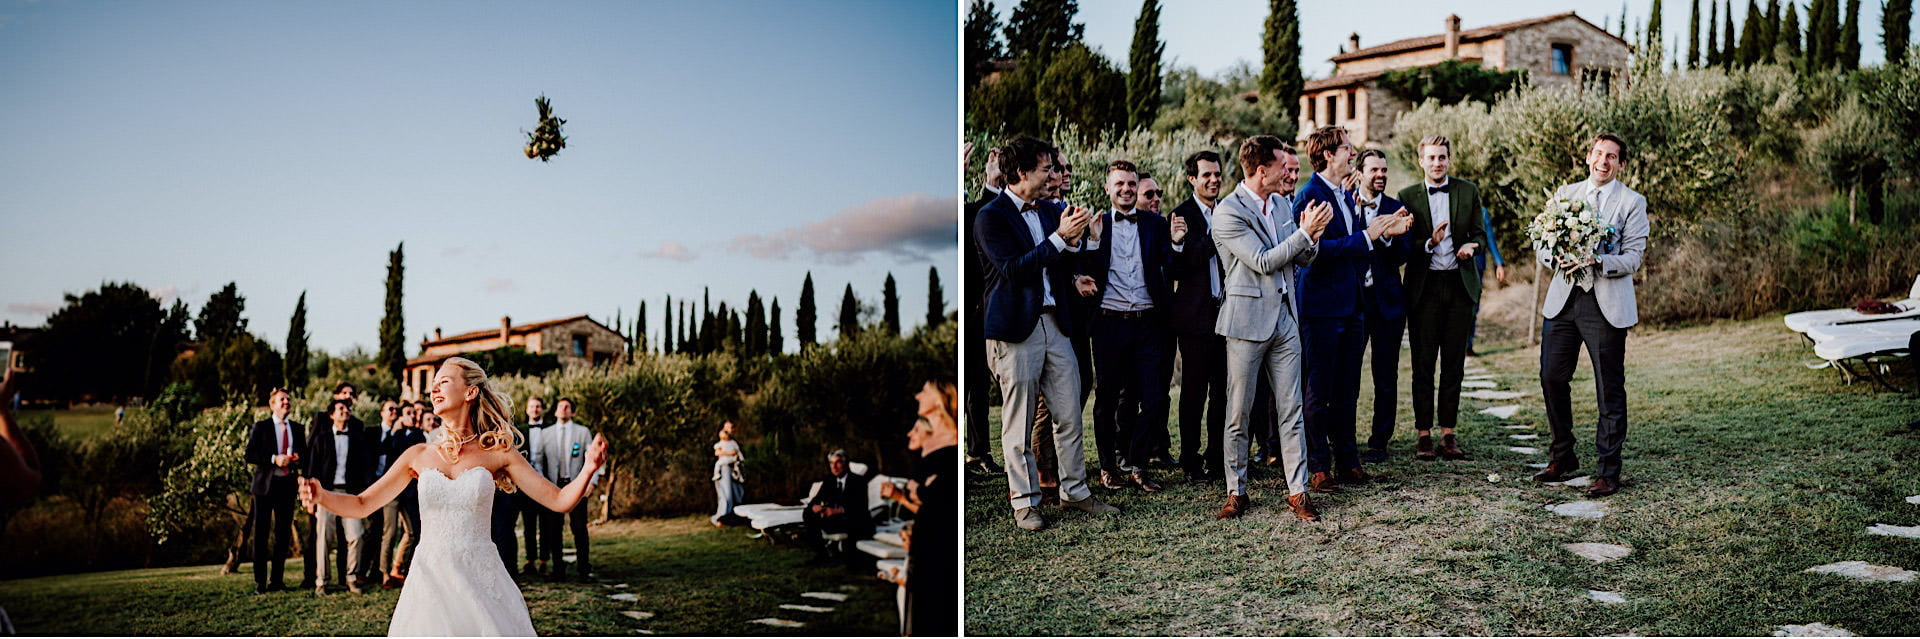 Tuscany Countryside Wedding at Lazy Olive, Tuscany Countryside Wedding at Lazy Olive, Federico Pannacci